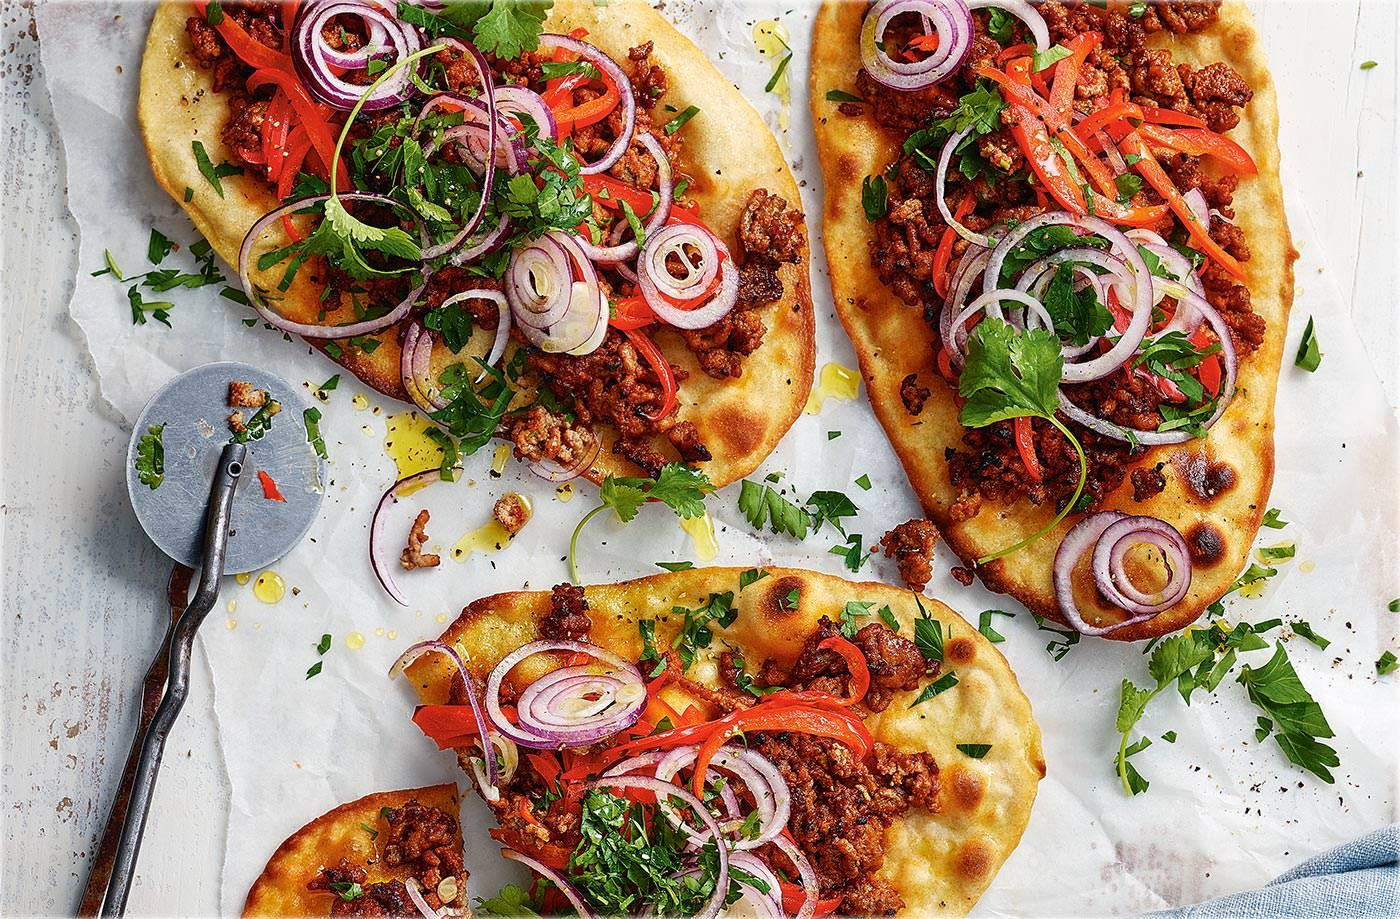 Cheats Turkish Pide